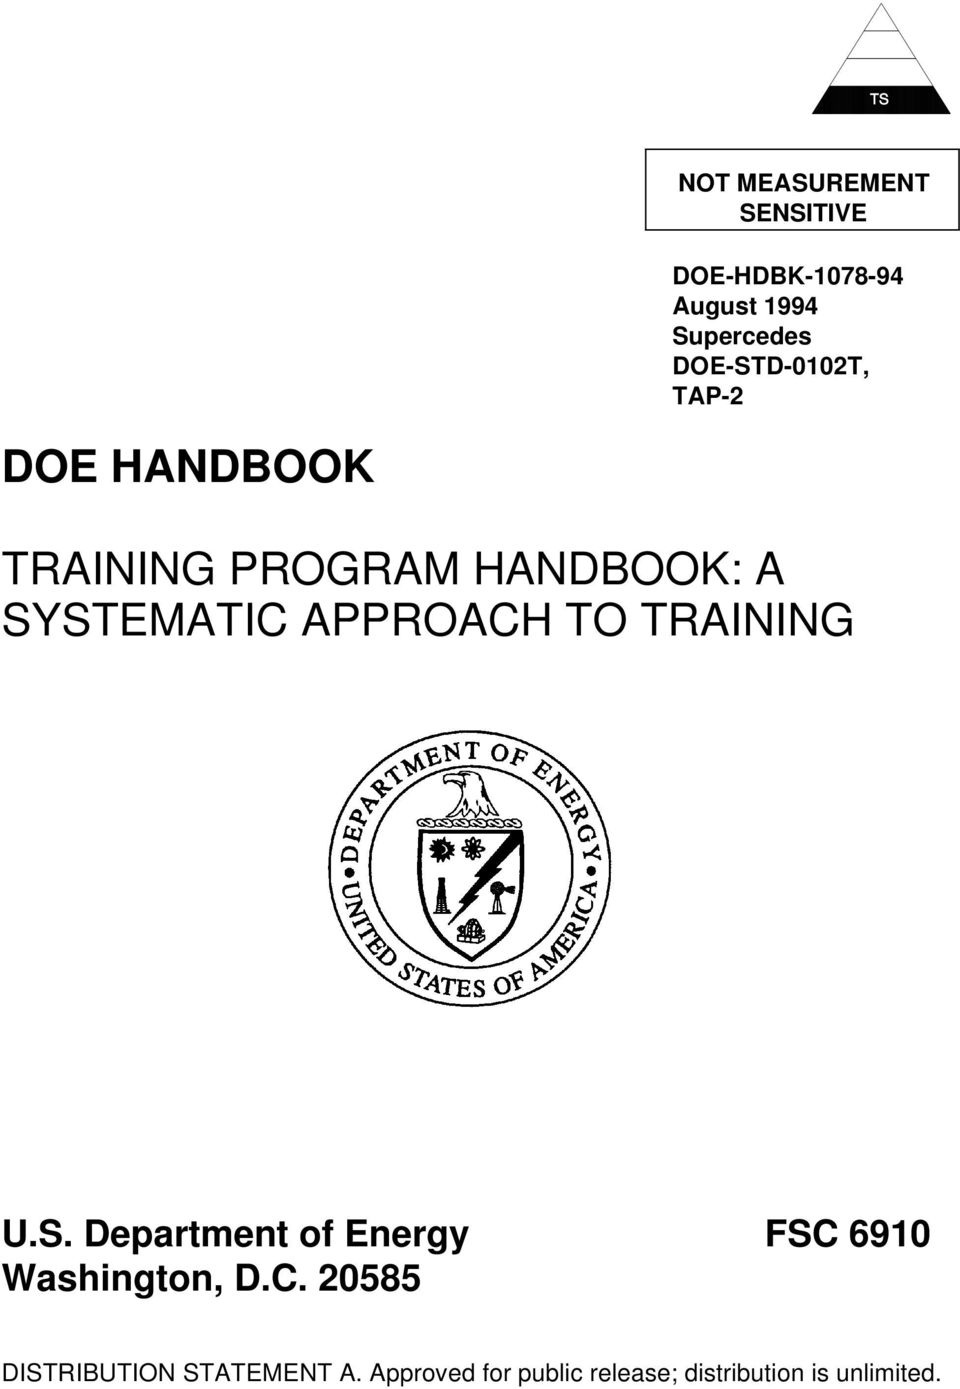 APPROAH TO TRAINING U.S. Department of Energy FS 6910 Washington, D.